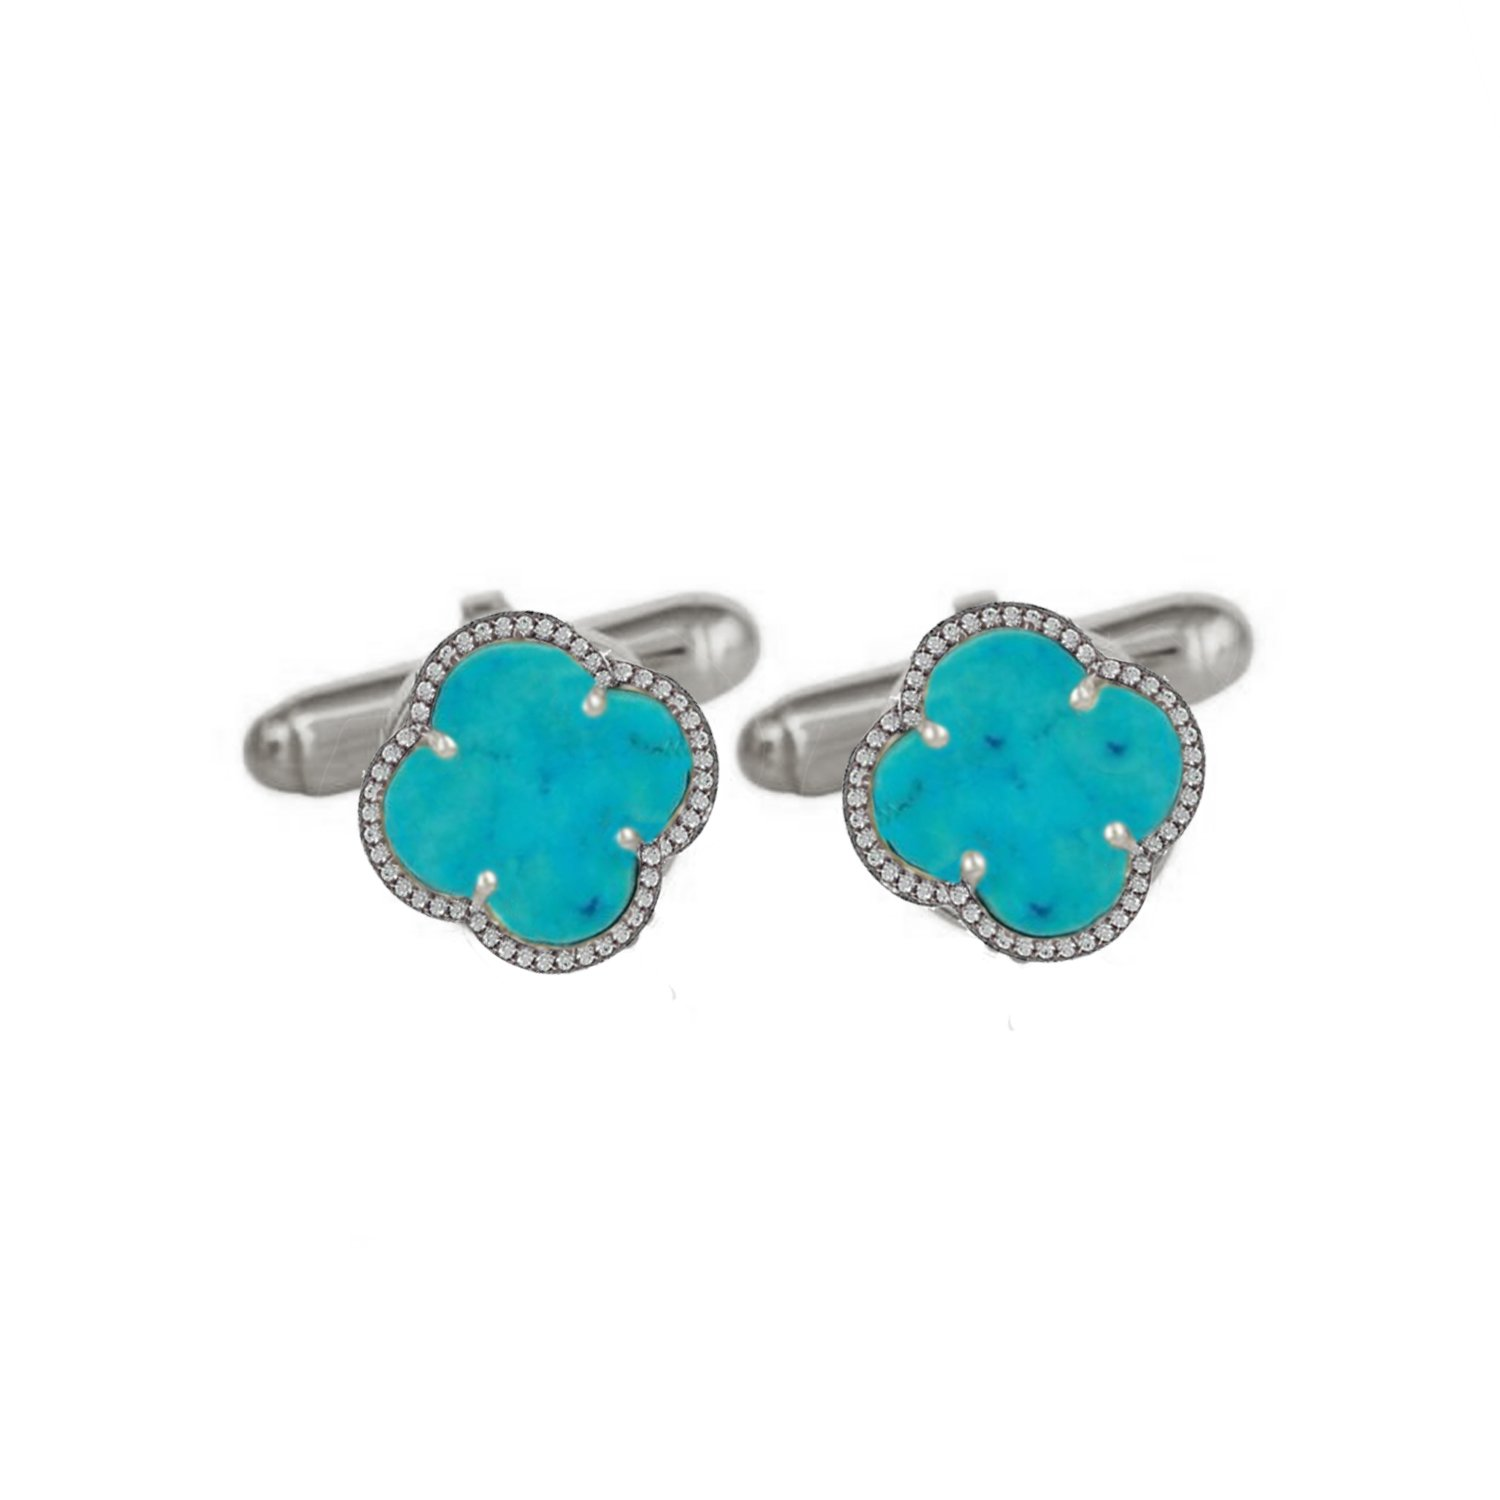 Pave Diamond Cuff links 925 Silver Turquoise Gemstone Clover Men's Jewelry Wholesale